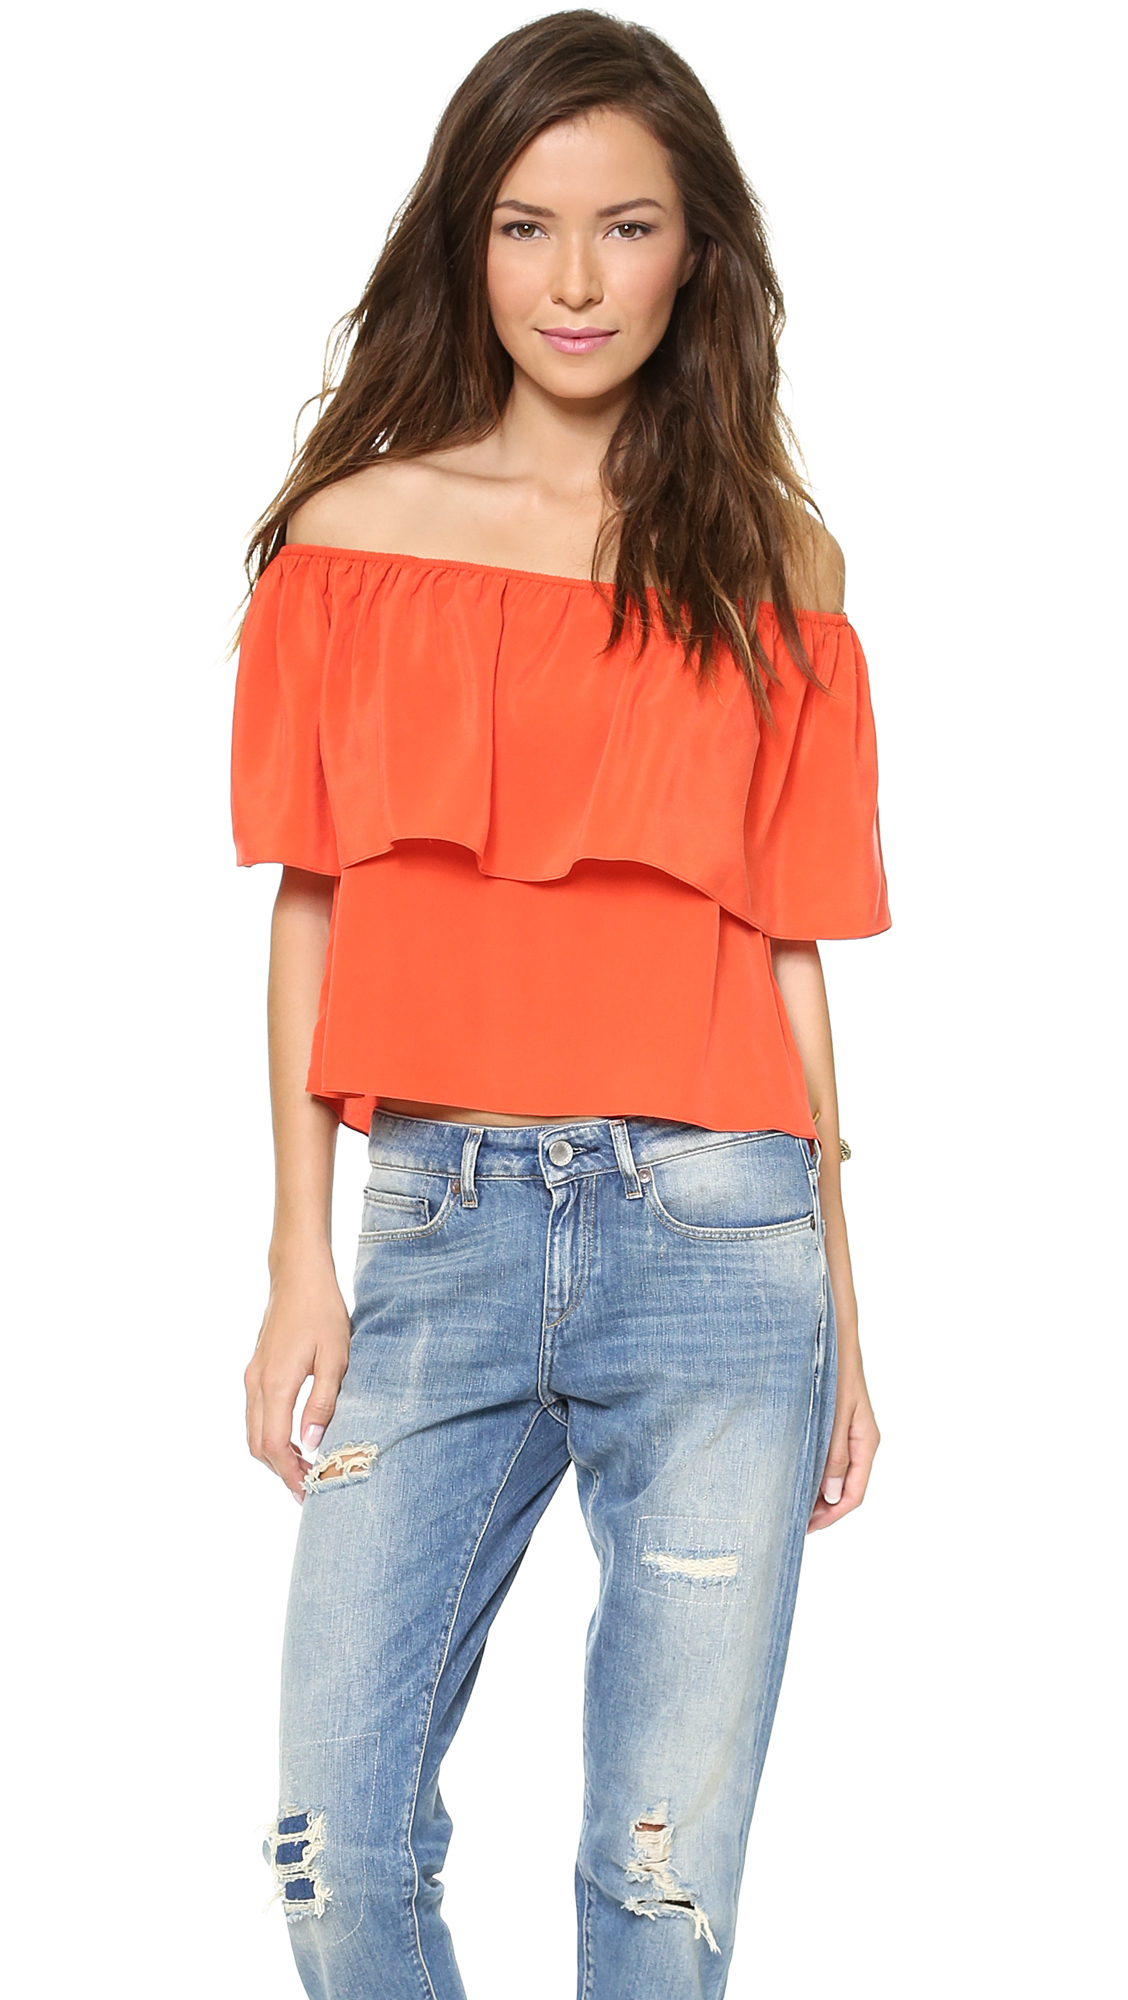 The Top 10 Fashion Trends Of 2012: Rebecca Minkoff Dev Off The Shoulder Top Navy In Orange